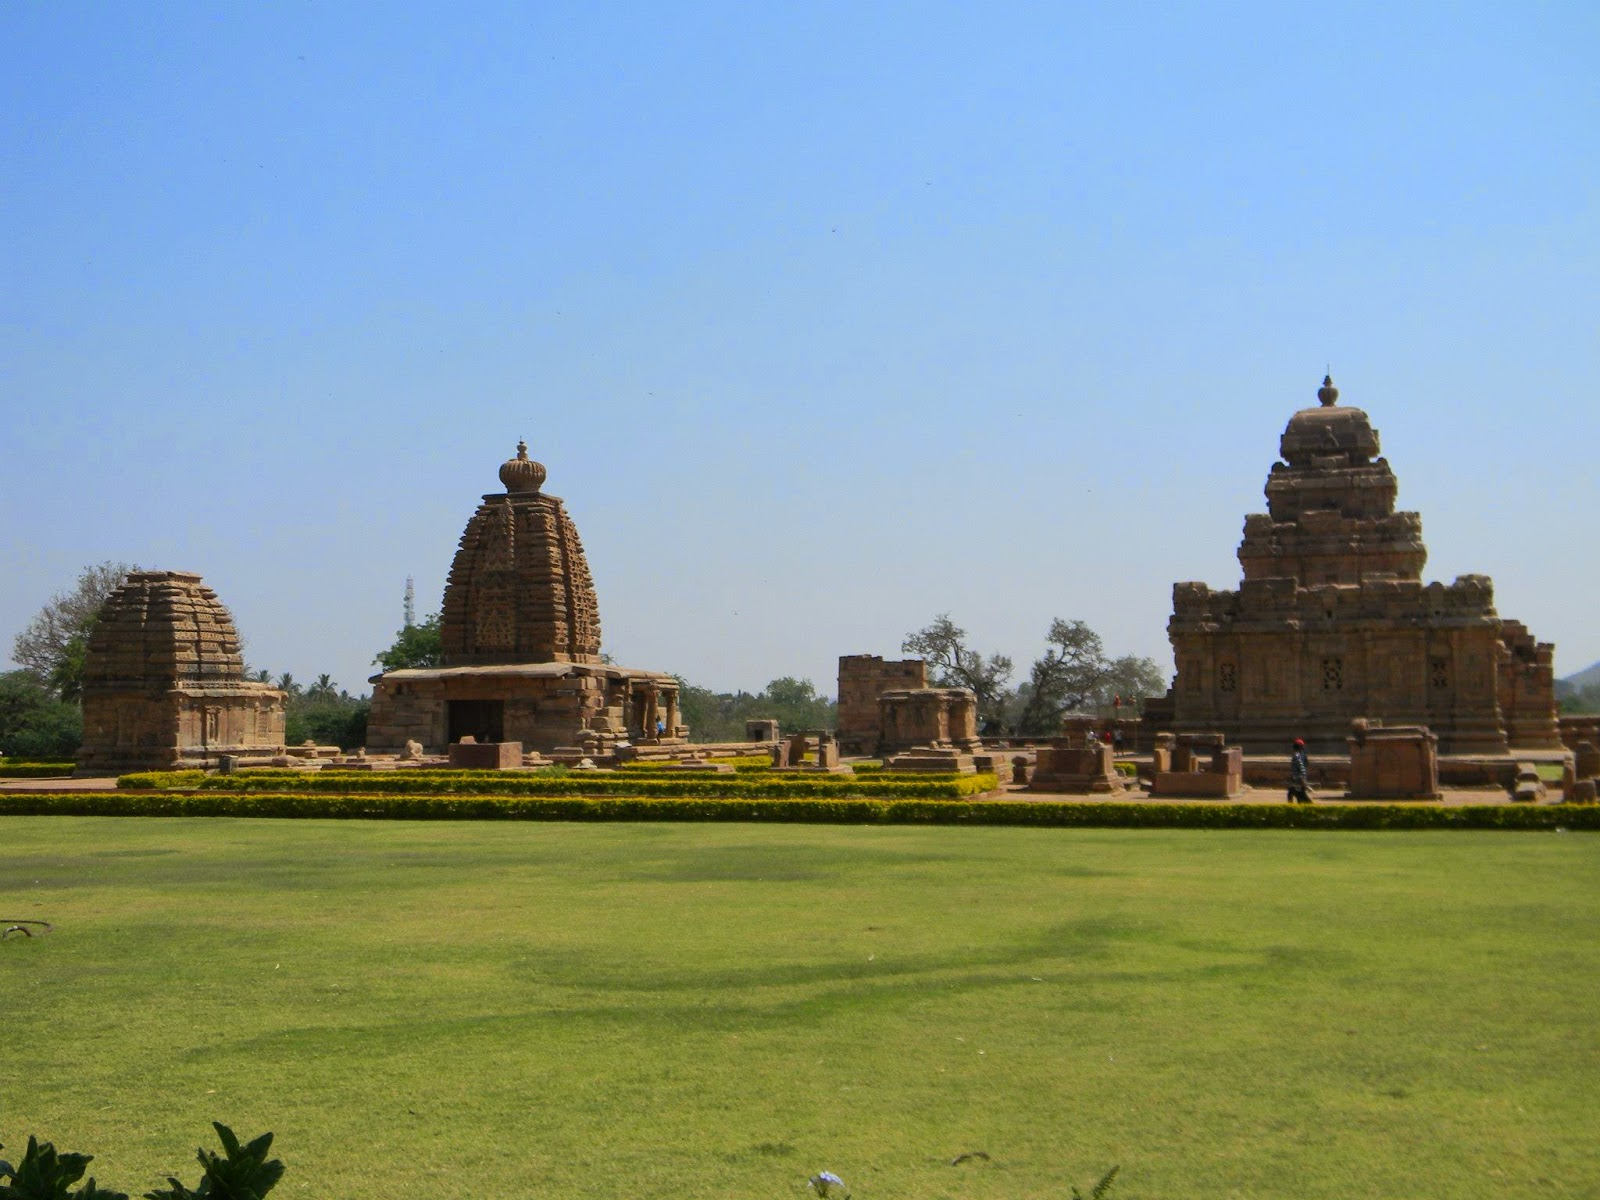 http://www.thewanderingsoul.in/2013/03/pattadakal-city-of-crwon-rubies.html